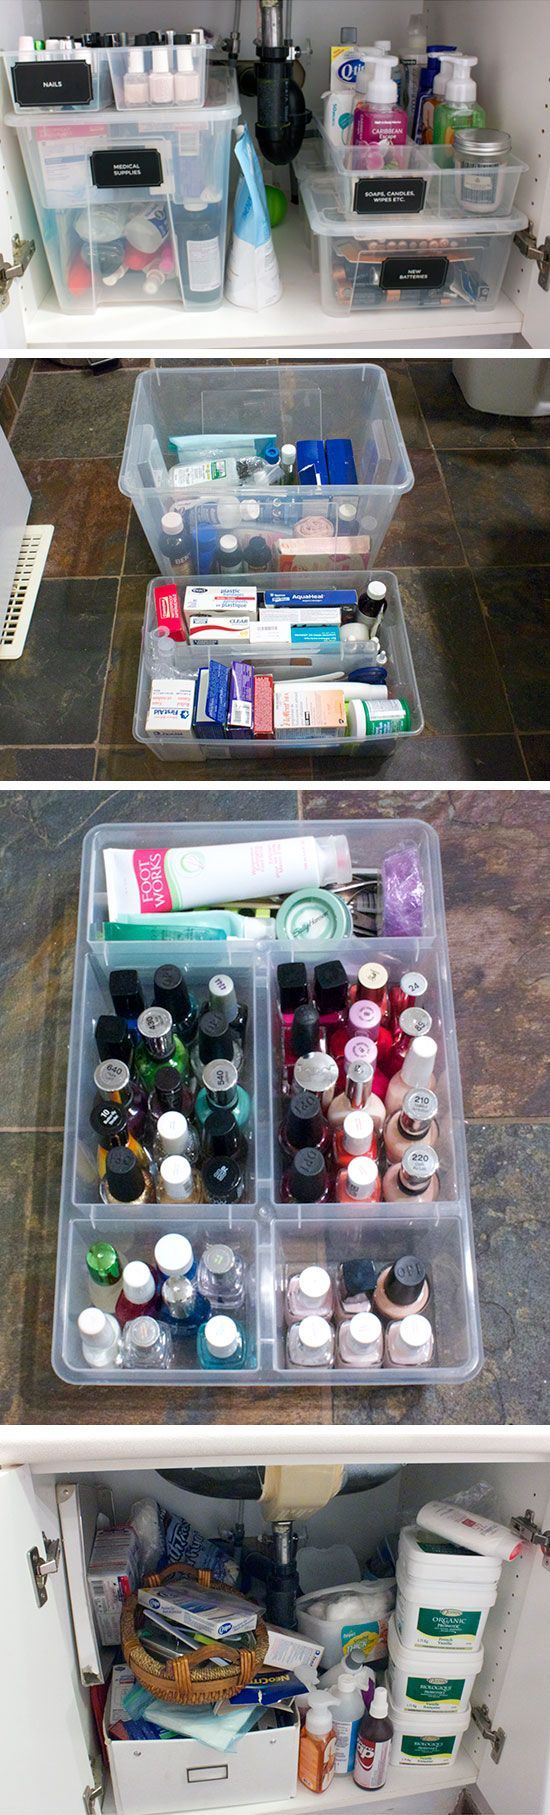 Diy bathroom storage ideas - 25 Best Ideas About Bathroom Storage Diy On Pinterest Diy Bathroom Decor Small Bathroom Decorating And Half Bathroom Remodel